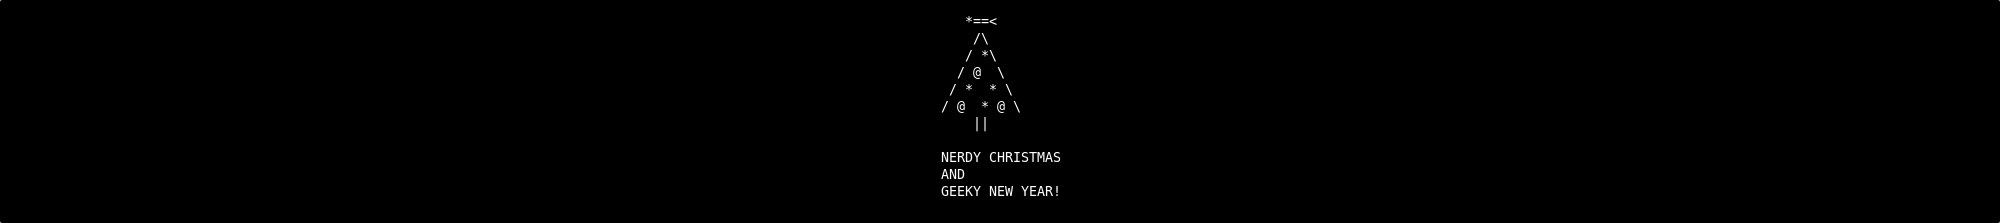 2017 Xmas Gift Guide for Geeks – Perfectionist Tendencies